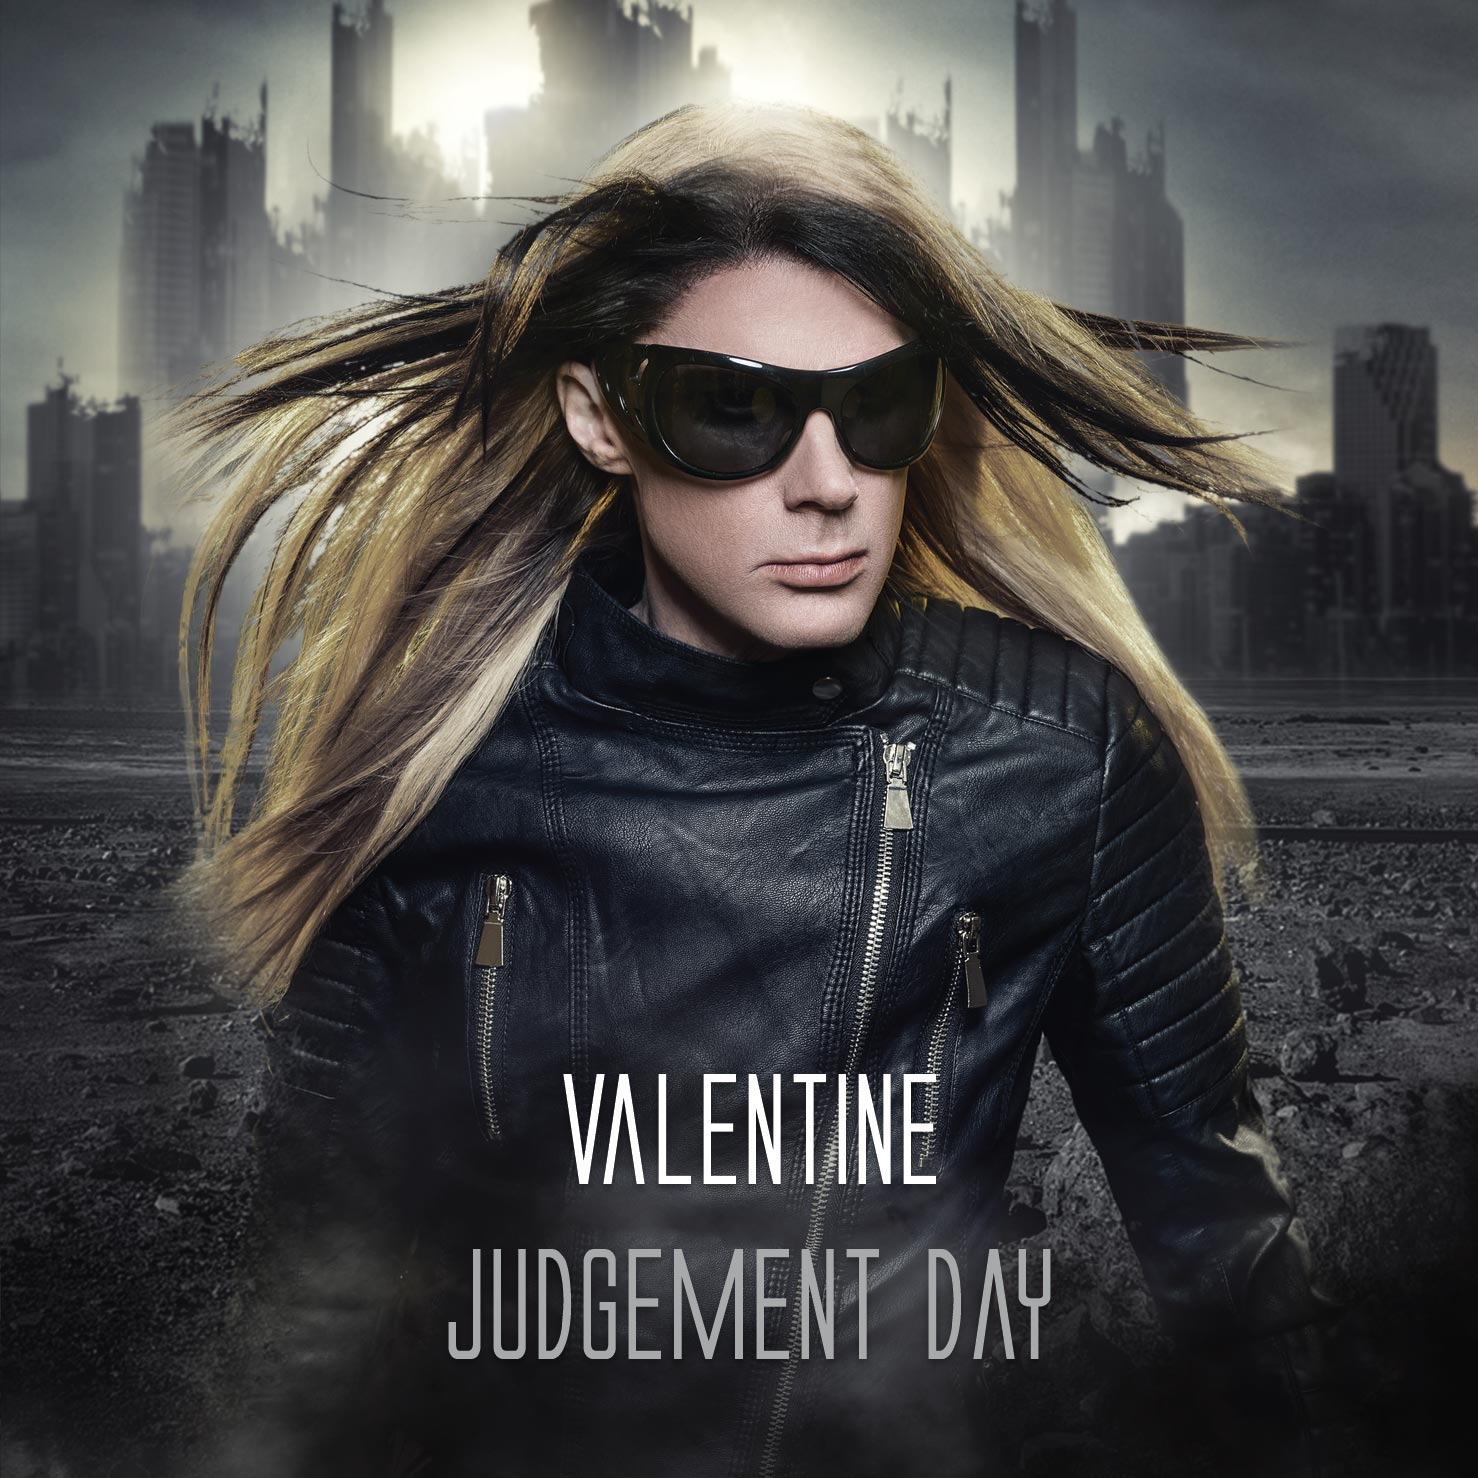 New single: Judgement Day